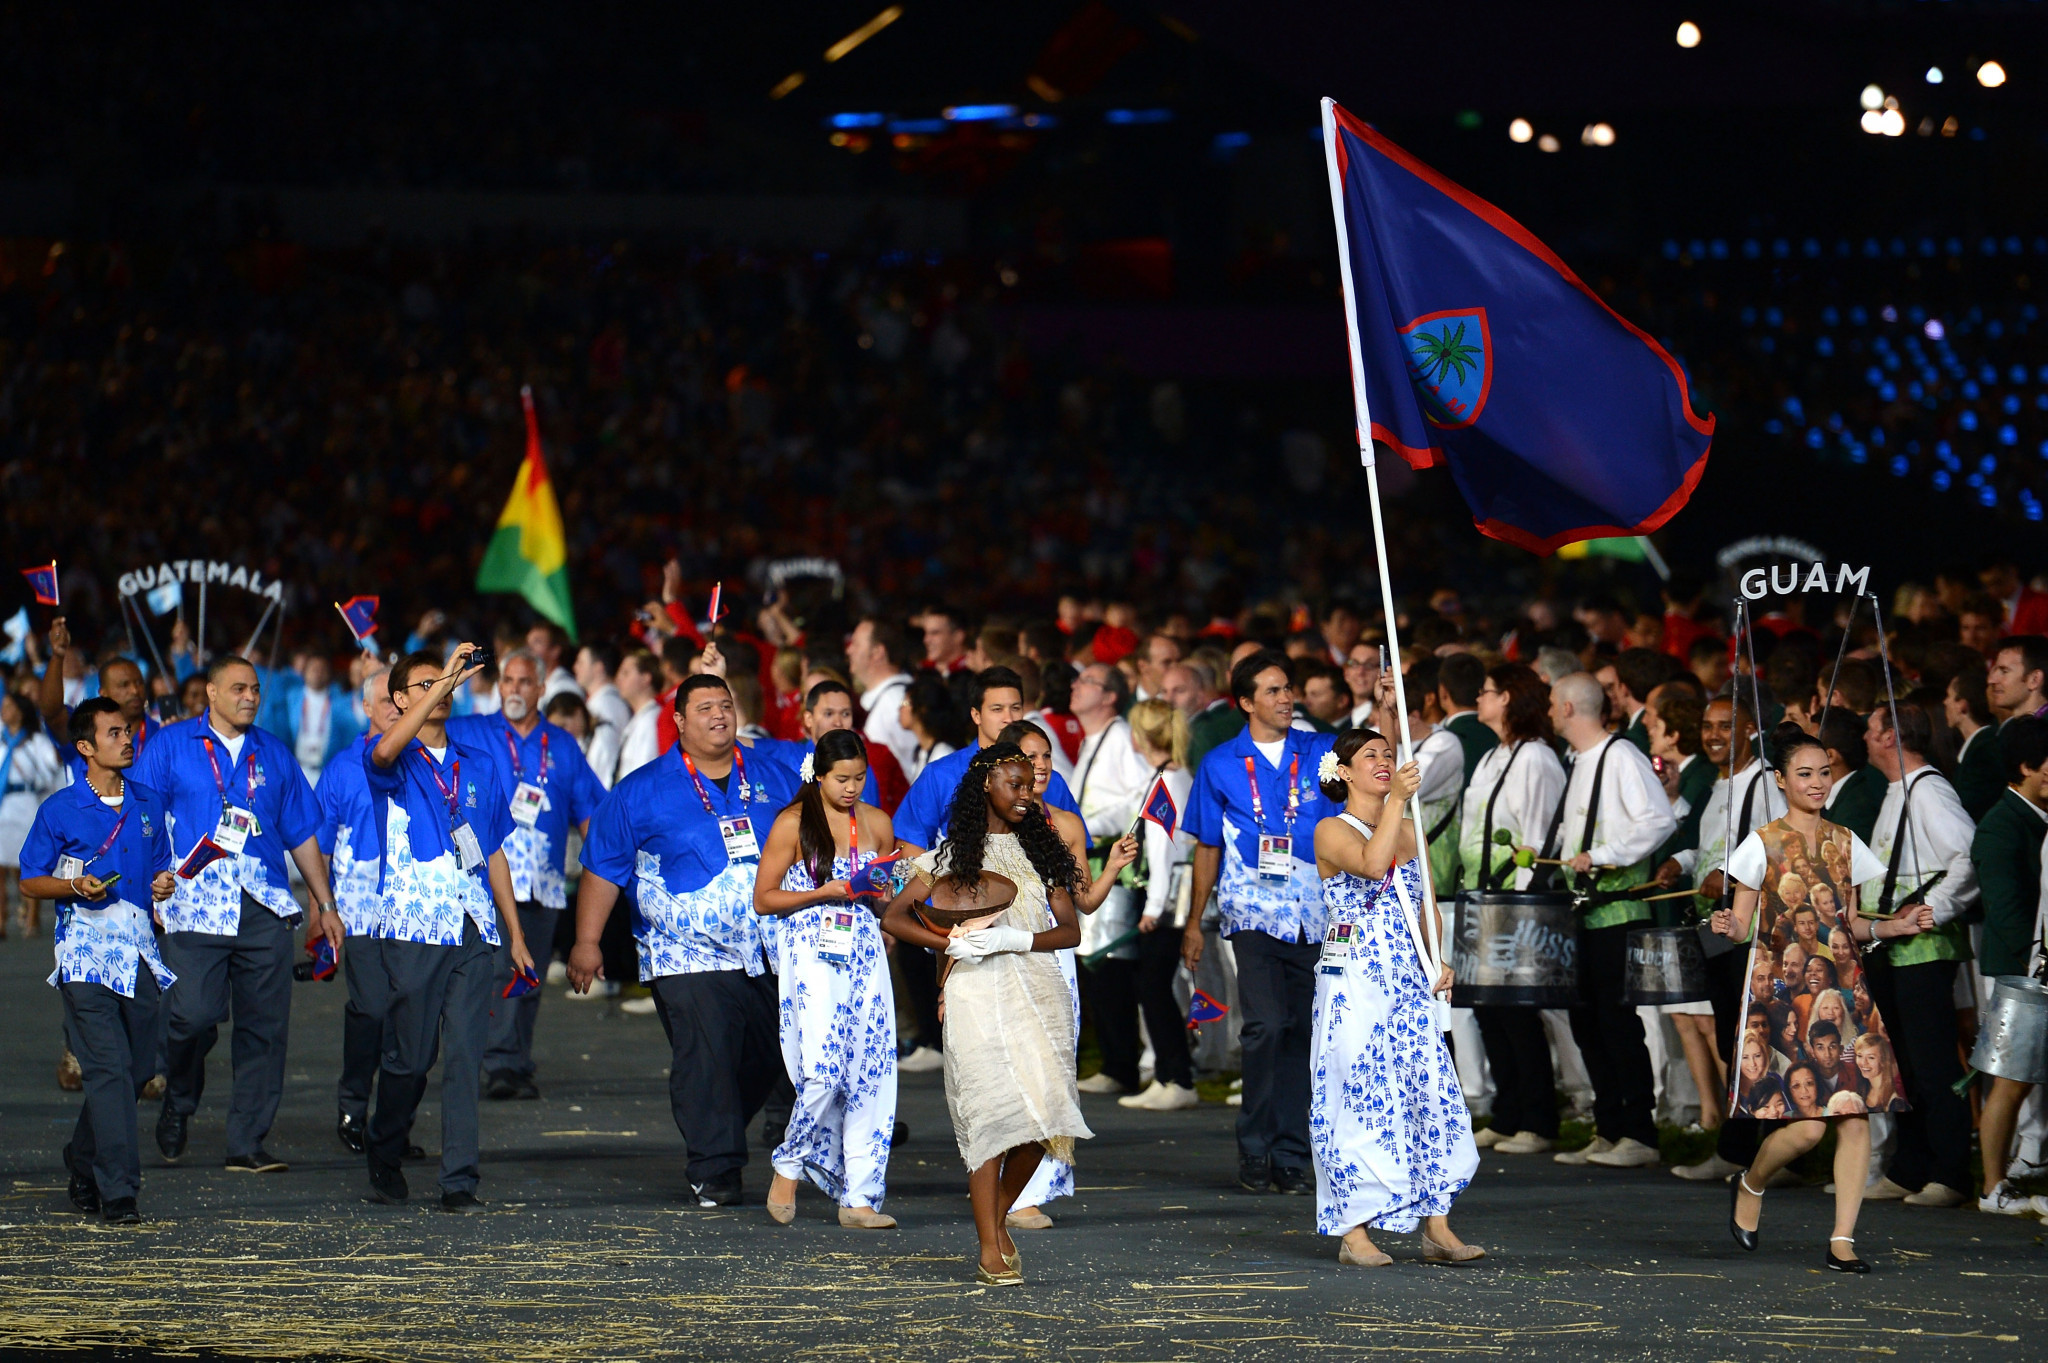 Guam first competed at the Olympics in 1988 ©Getty Images